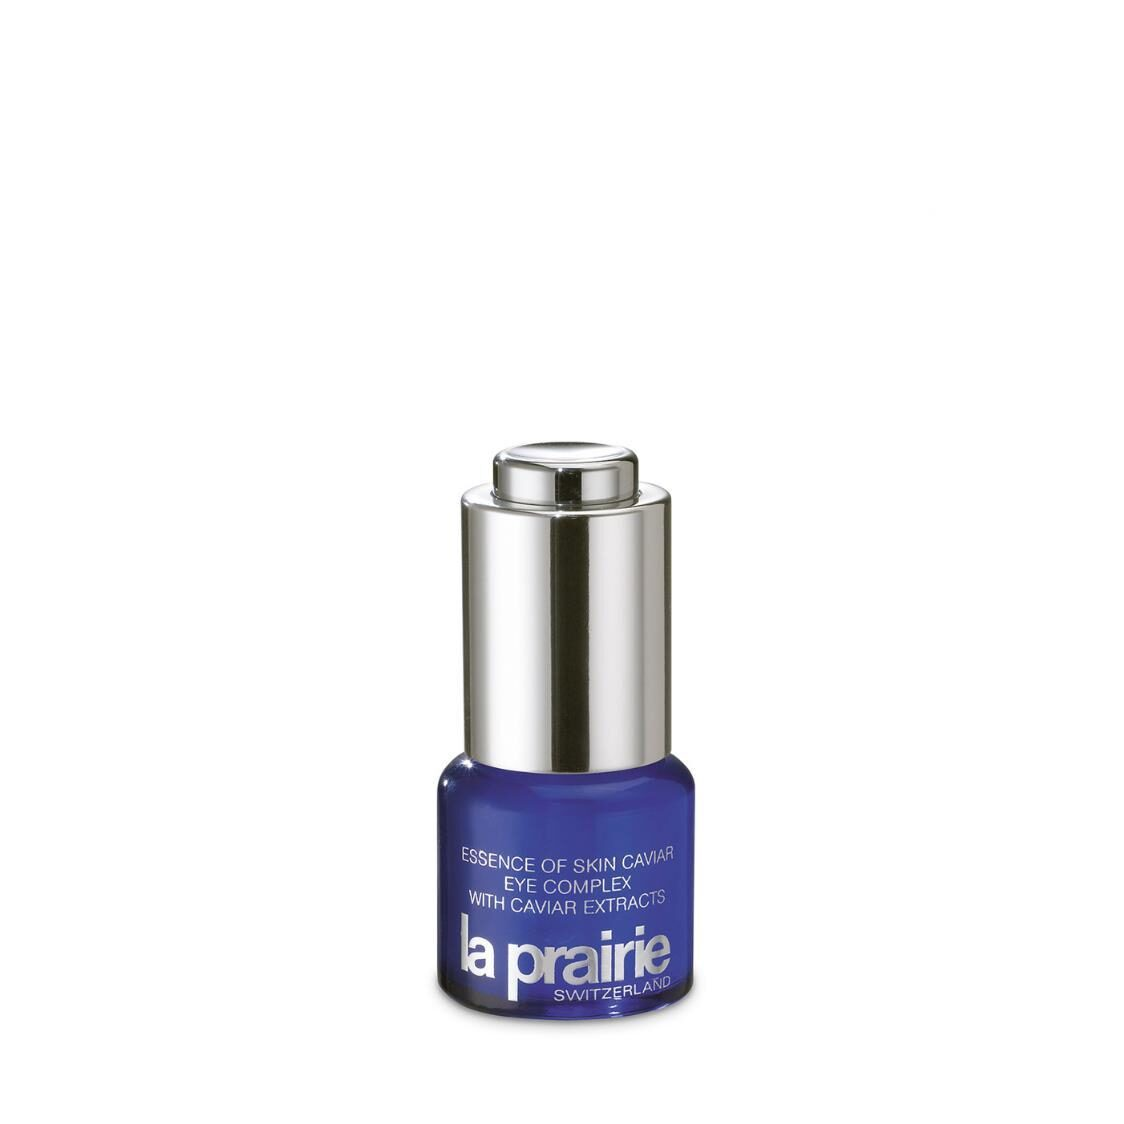 Essence of Skin Caviar Eye Complex with Caviar Extracts 15ml